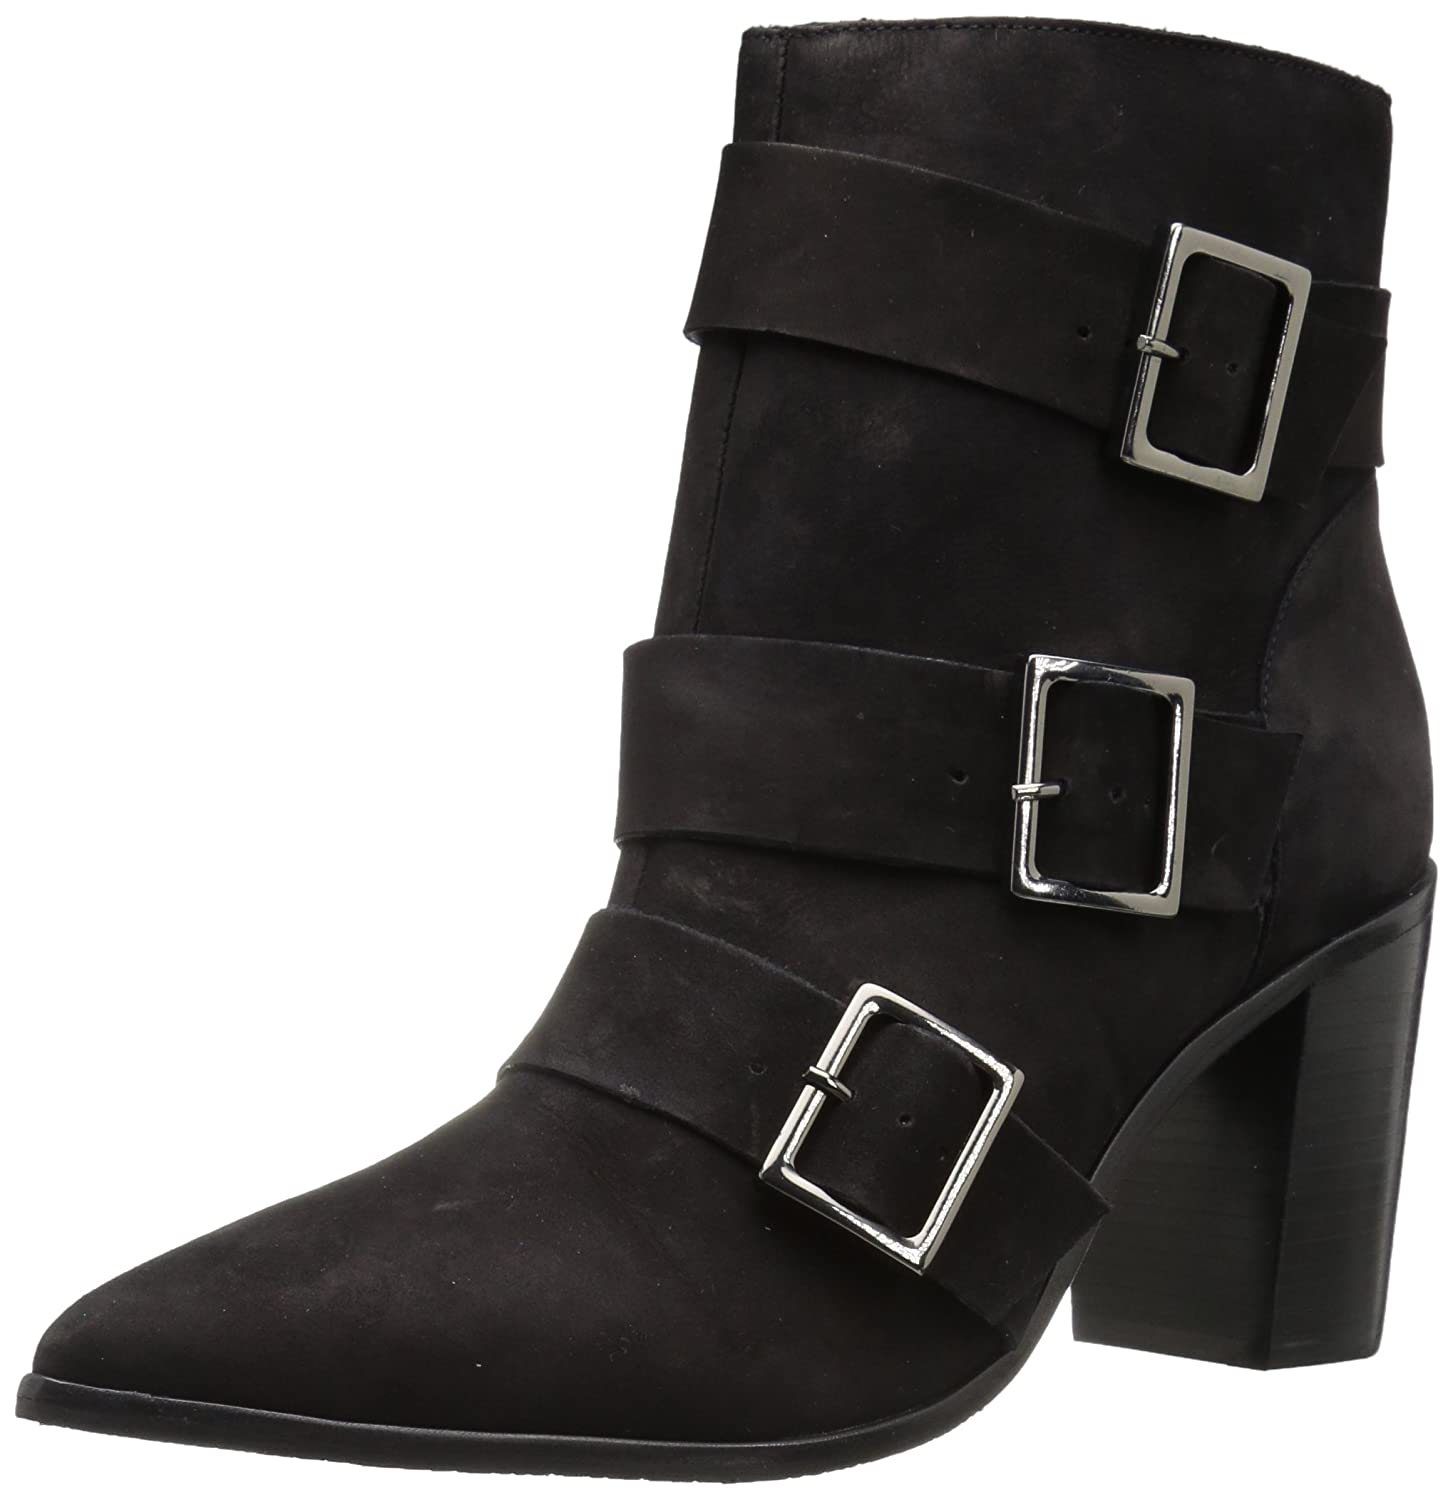 SCHUTZ Women's Bonna Ankle Boot B0711HJN8N 10 B(M) US|Black